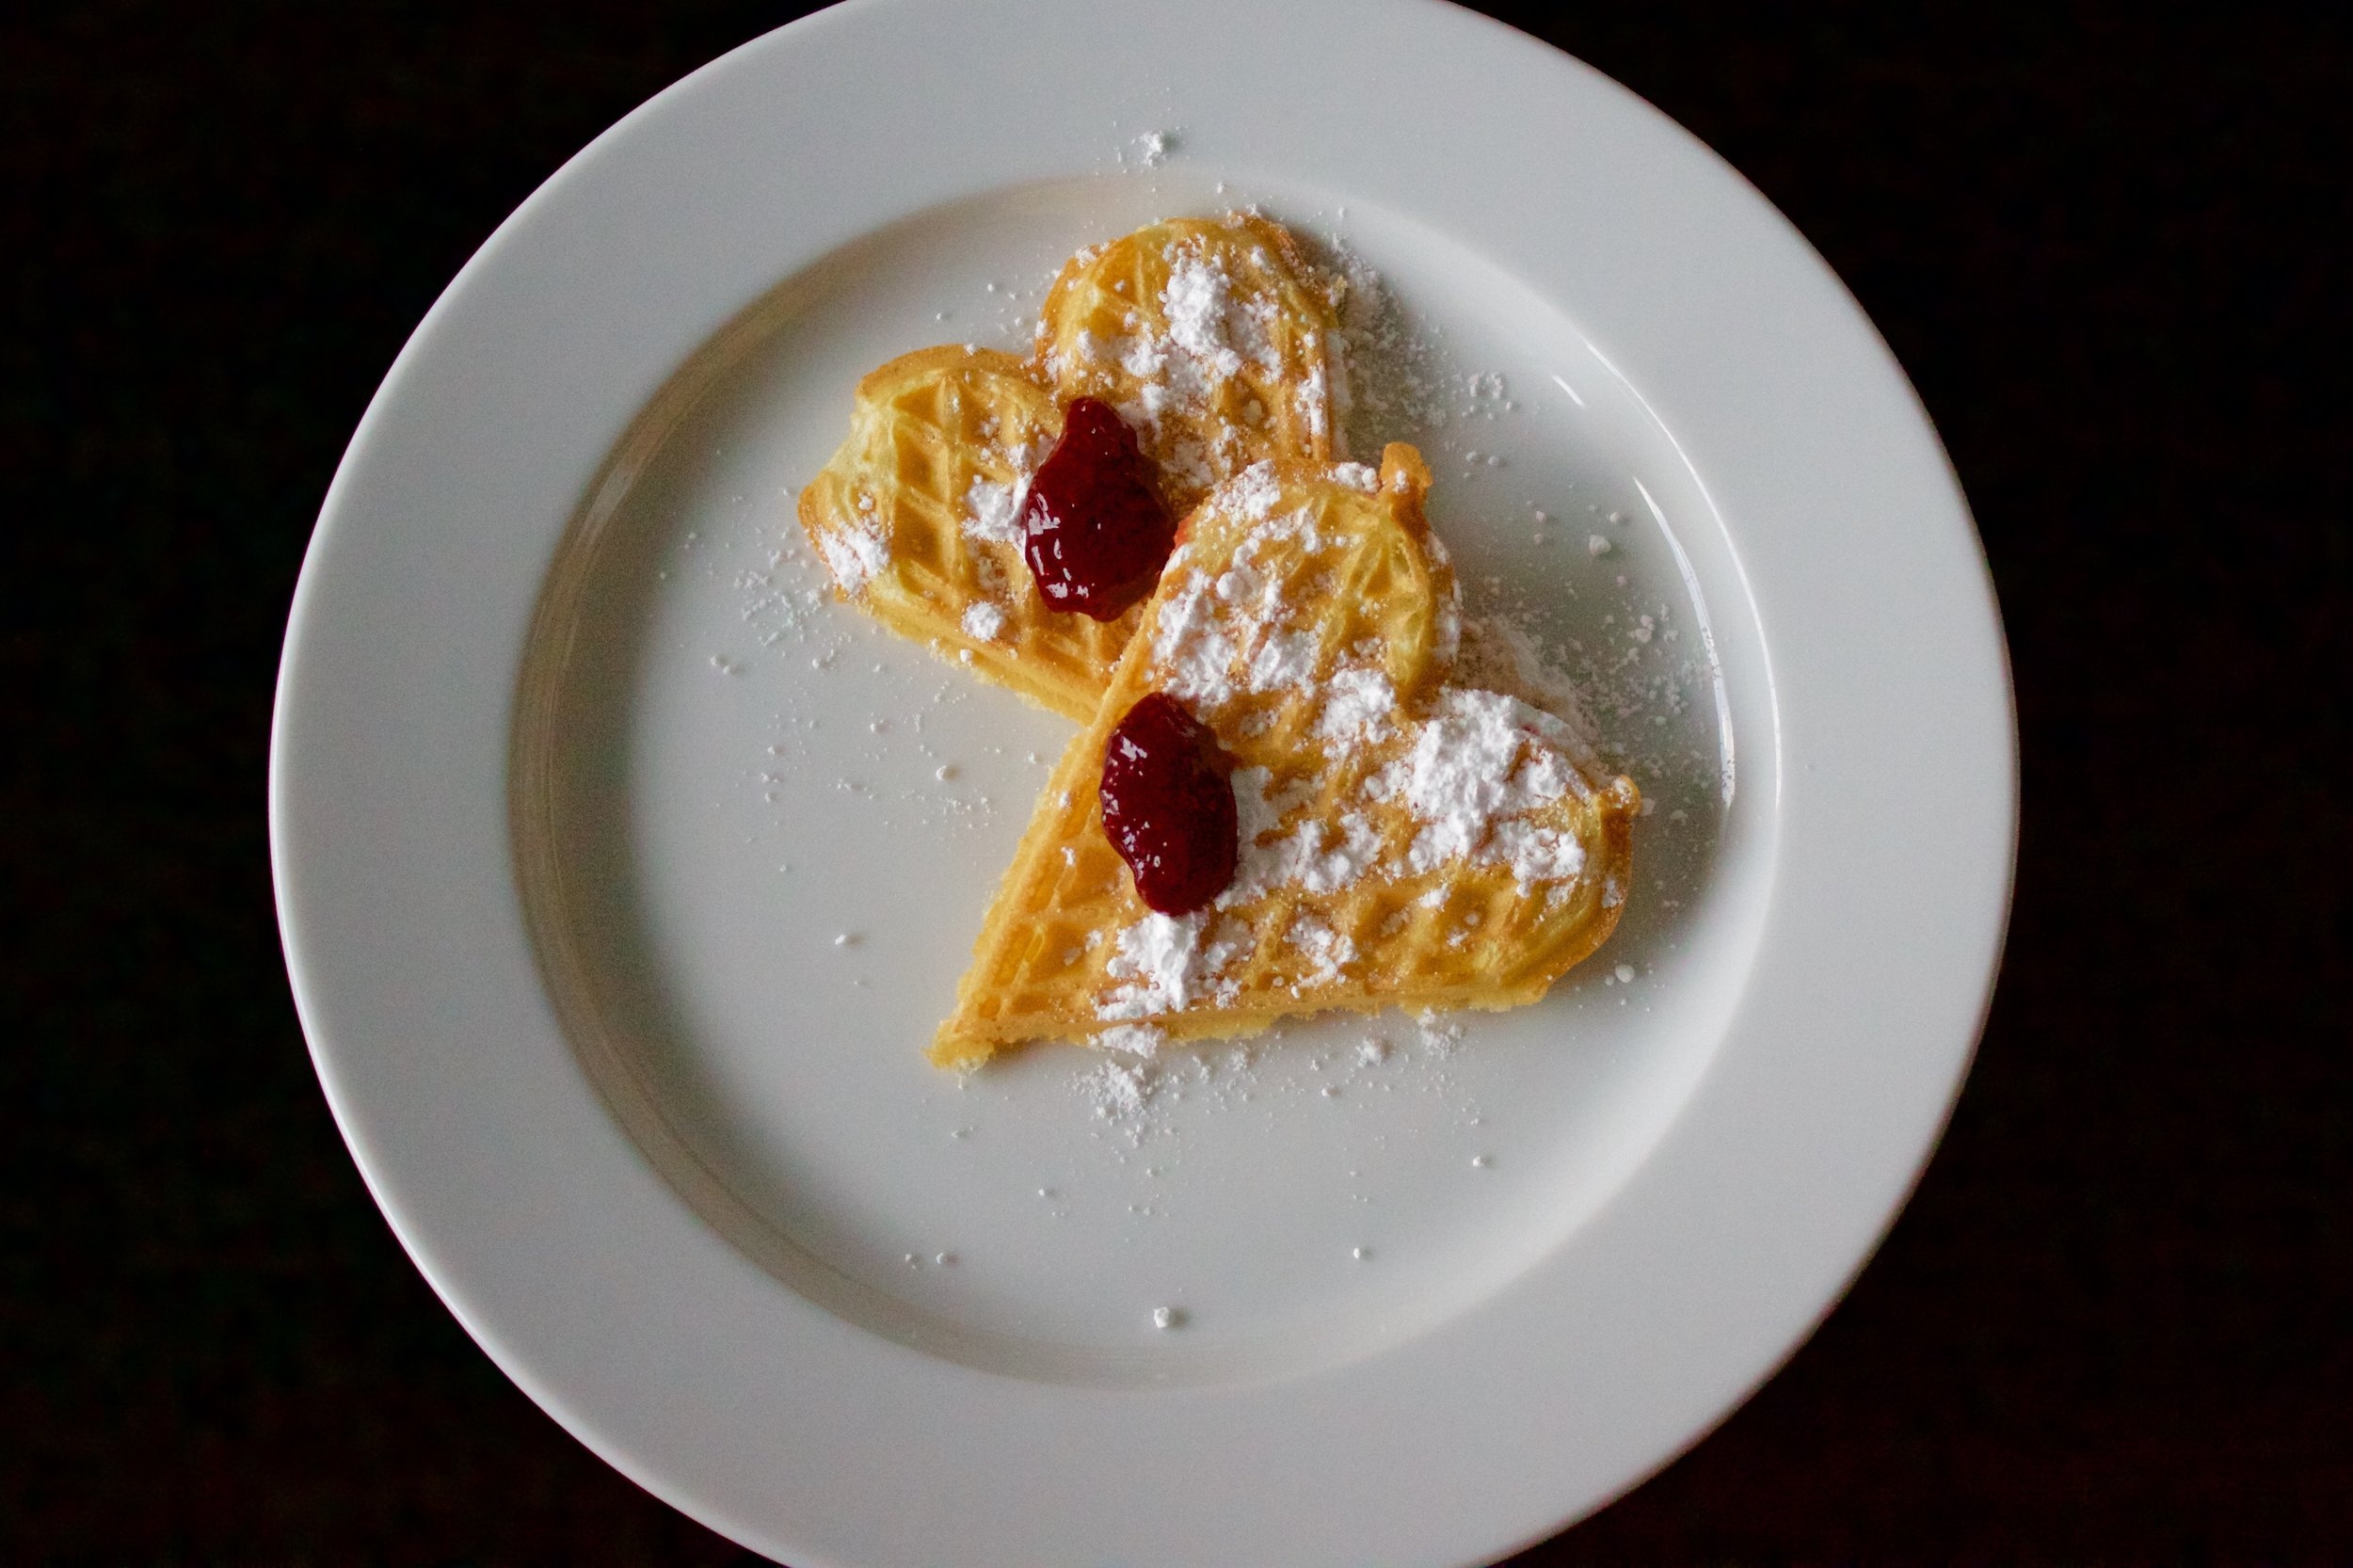 Scandinavian Heart-Shaped Waffles - traditional Scandic-Style with jam and powdered sugar | In Carina's Kitchen